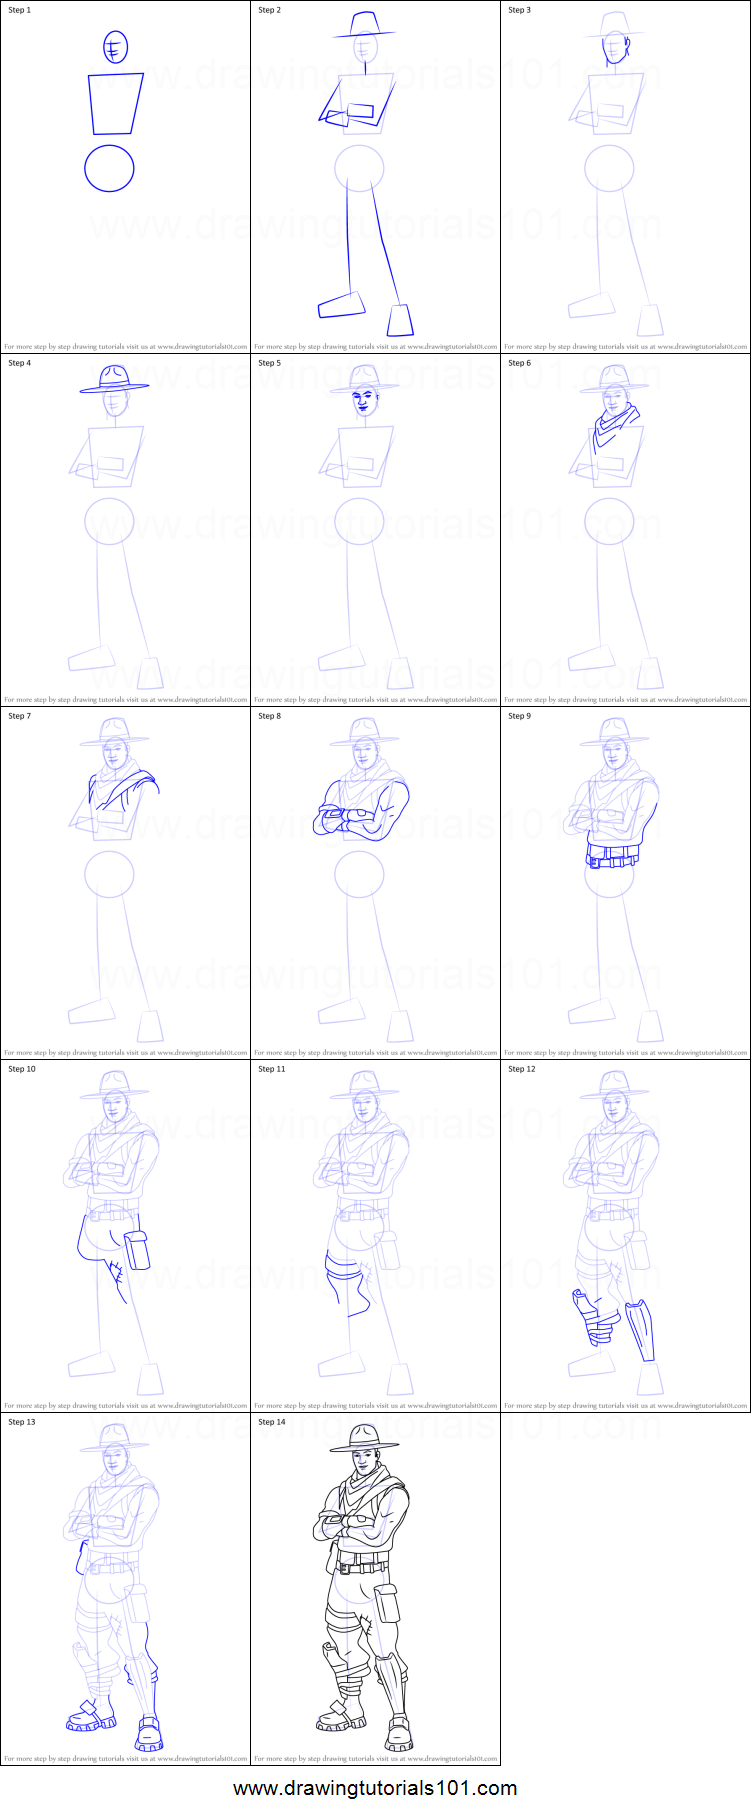 How to Draw Sash Sergeant from Fortnite printable step by